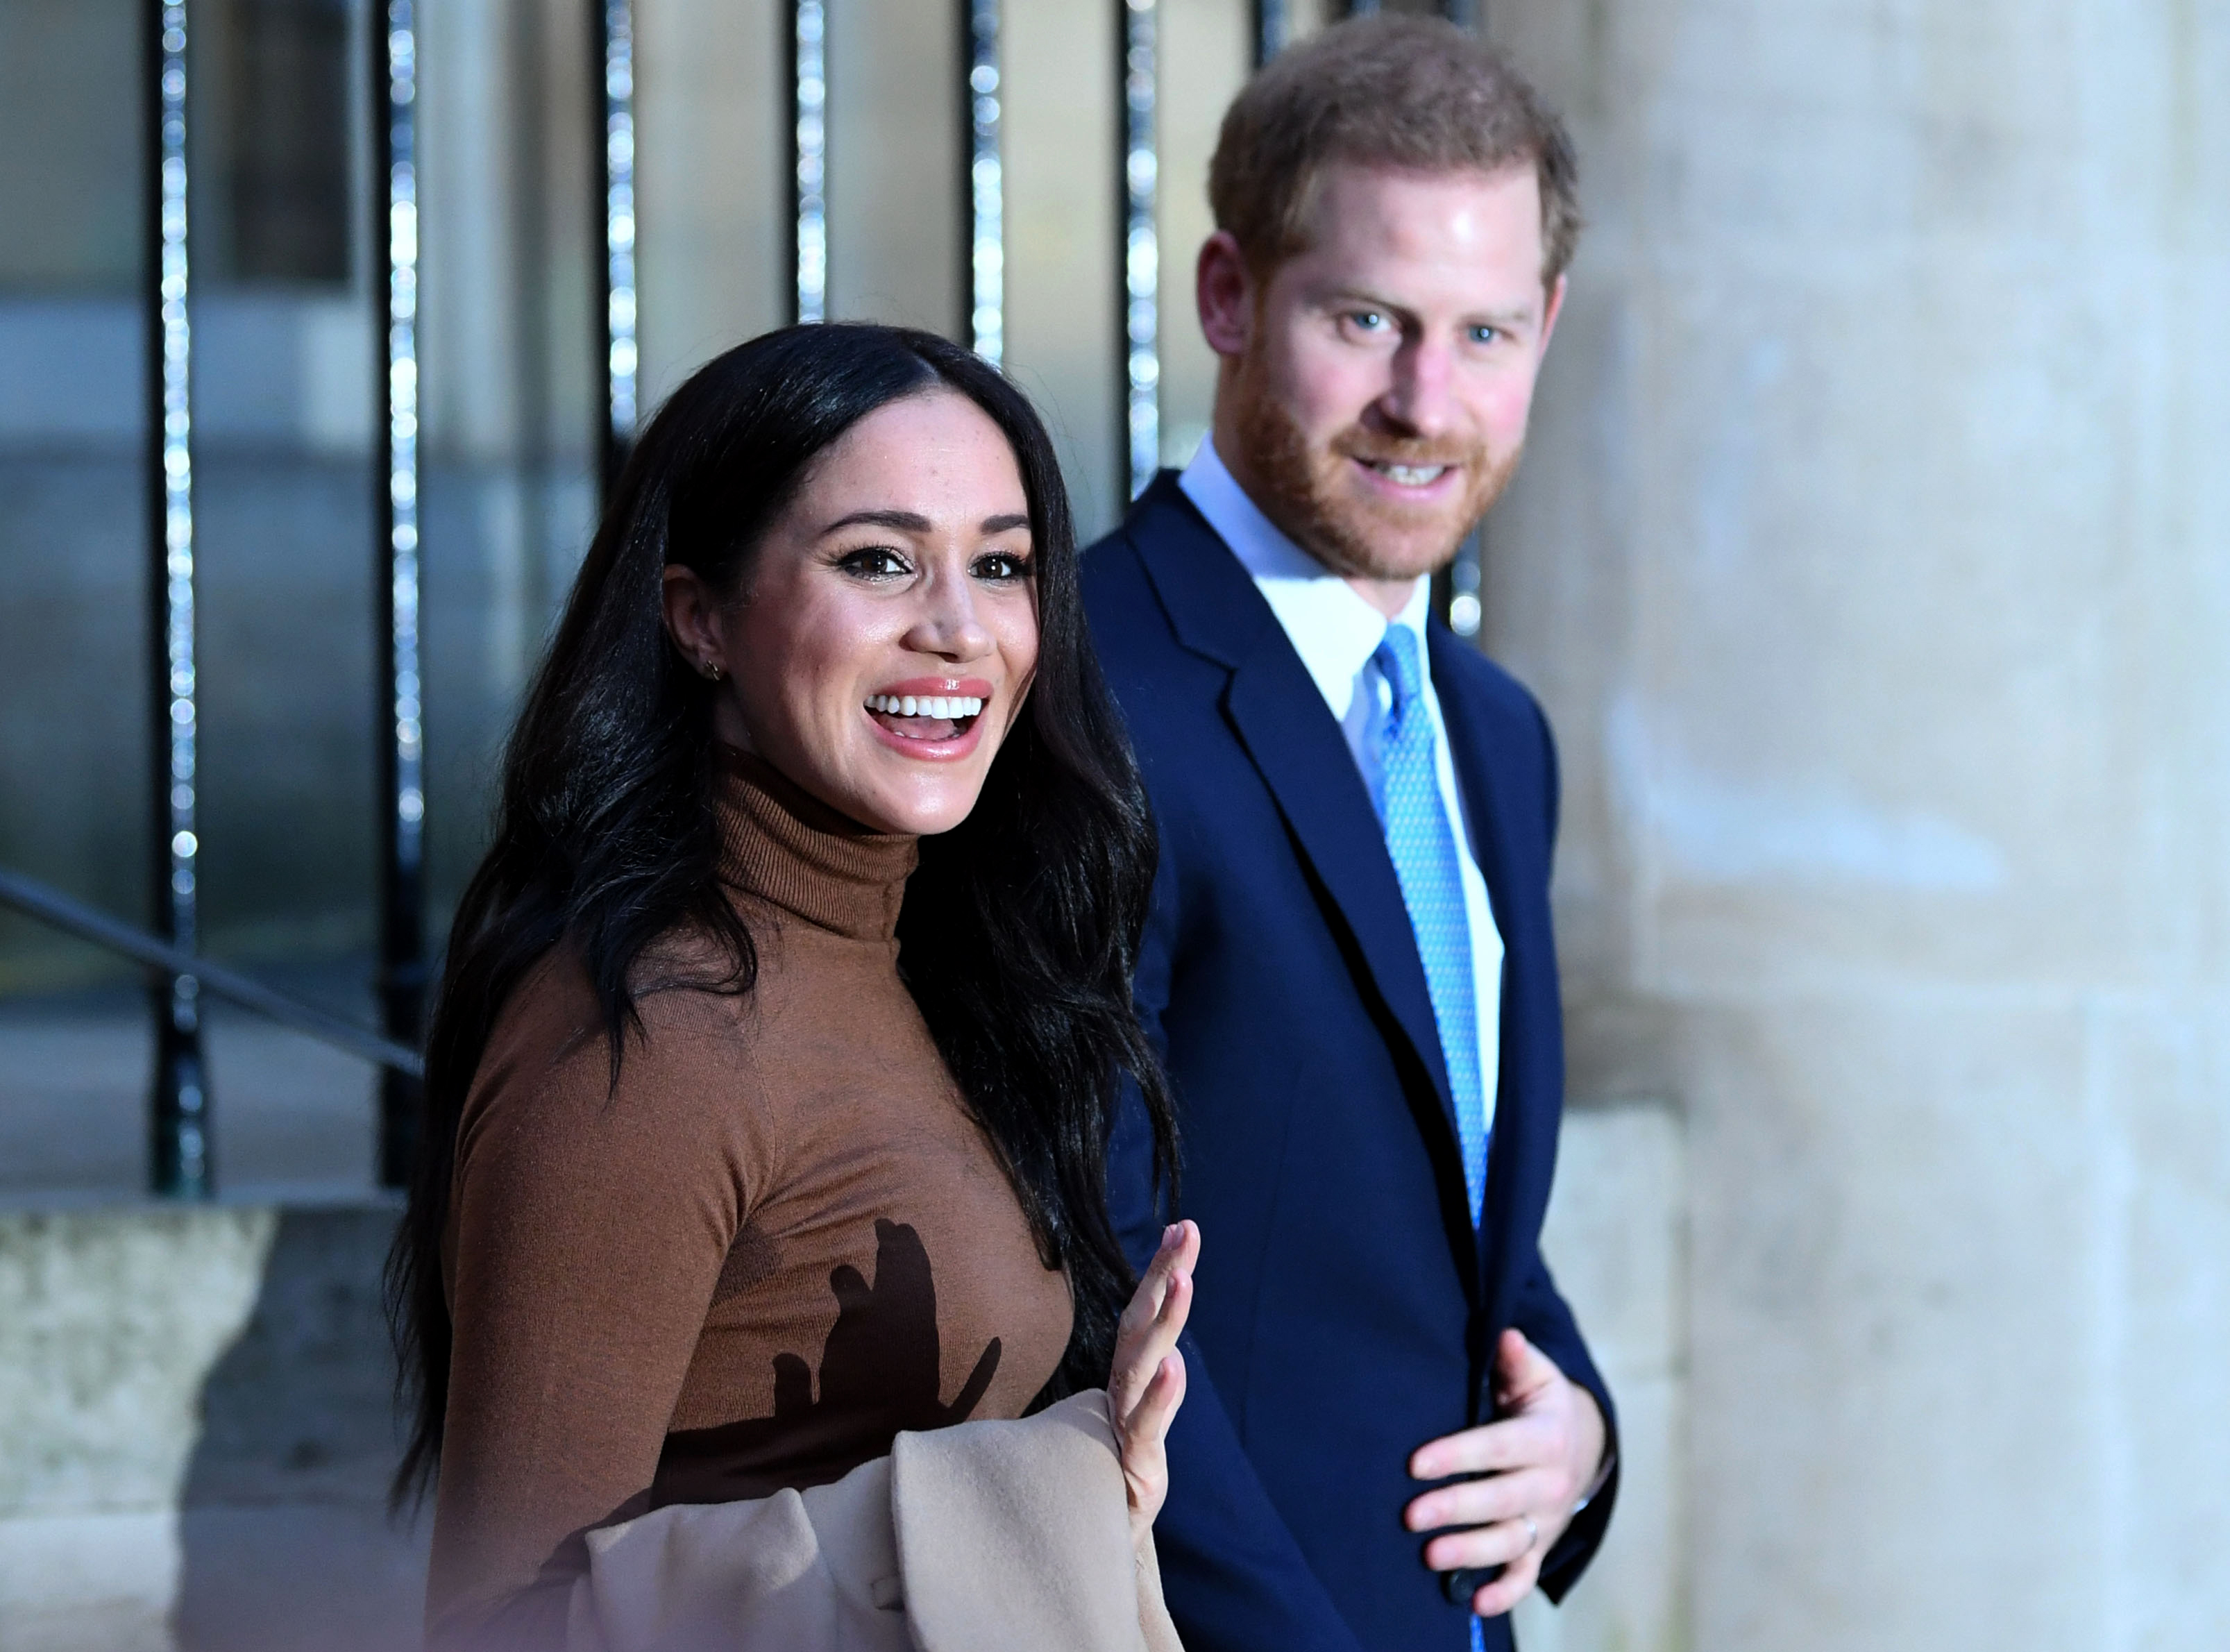 The Queen Calls Harry and Meghan Back to the UK for an Important Reason - Woman's World